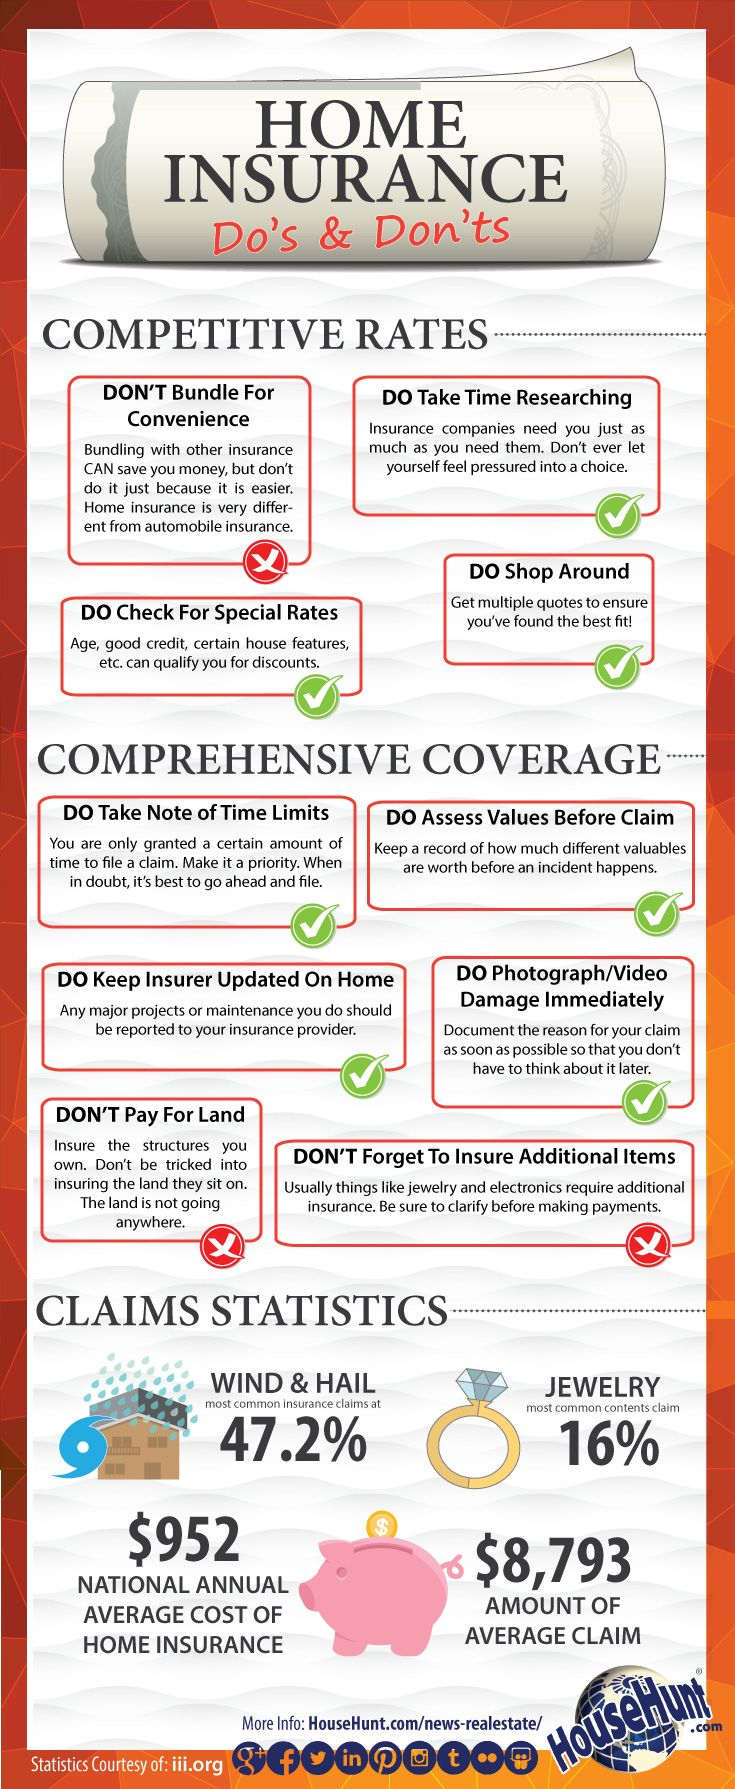 Here S Your Introduction To Homeinsurance Do S And Don Ts These